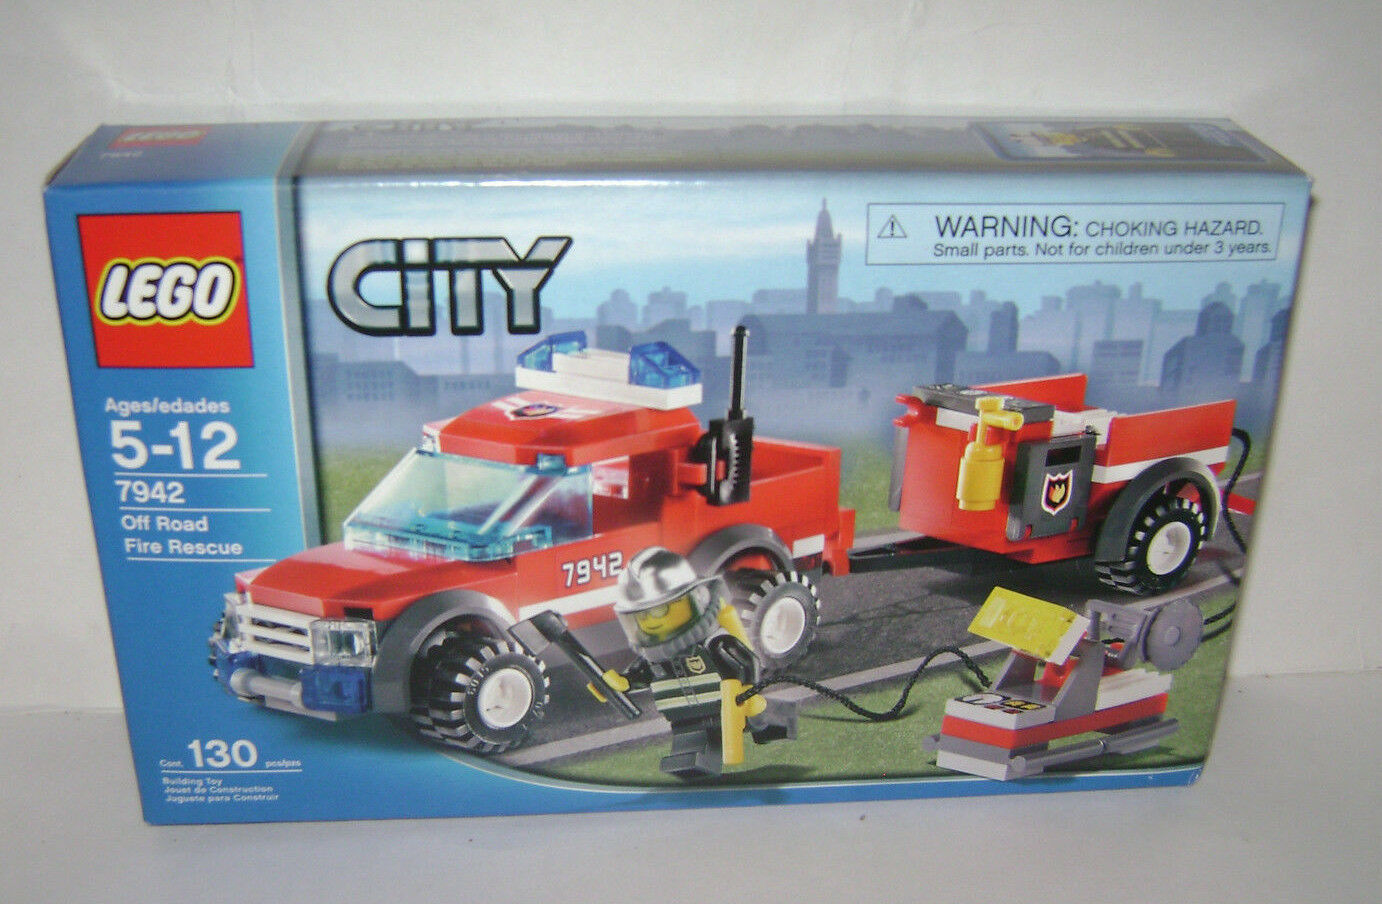 NEW 7942 Lego CITY Off Road Fire Rescue Building Toy SEALED BOX RETIRED RARE A